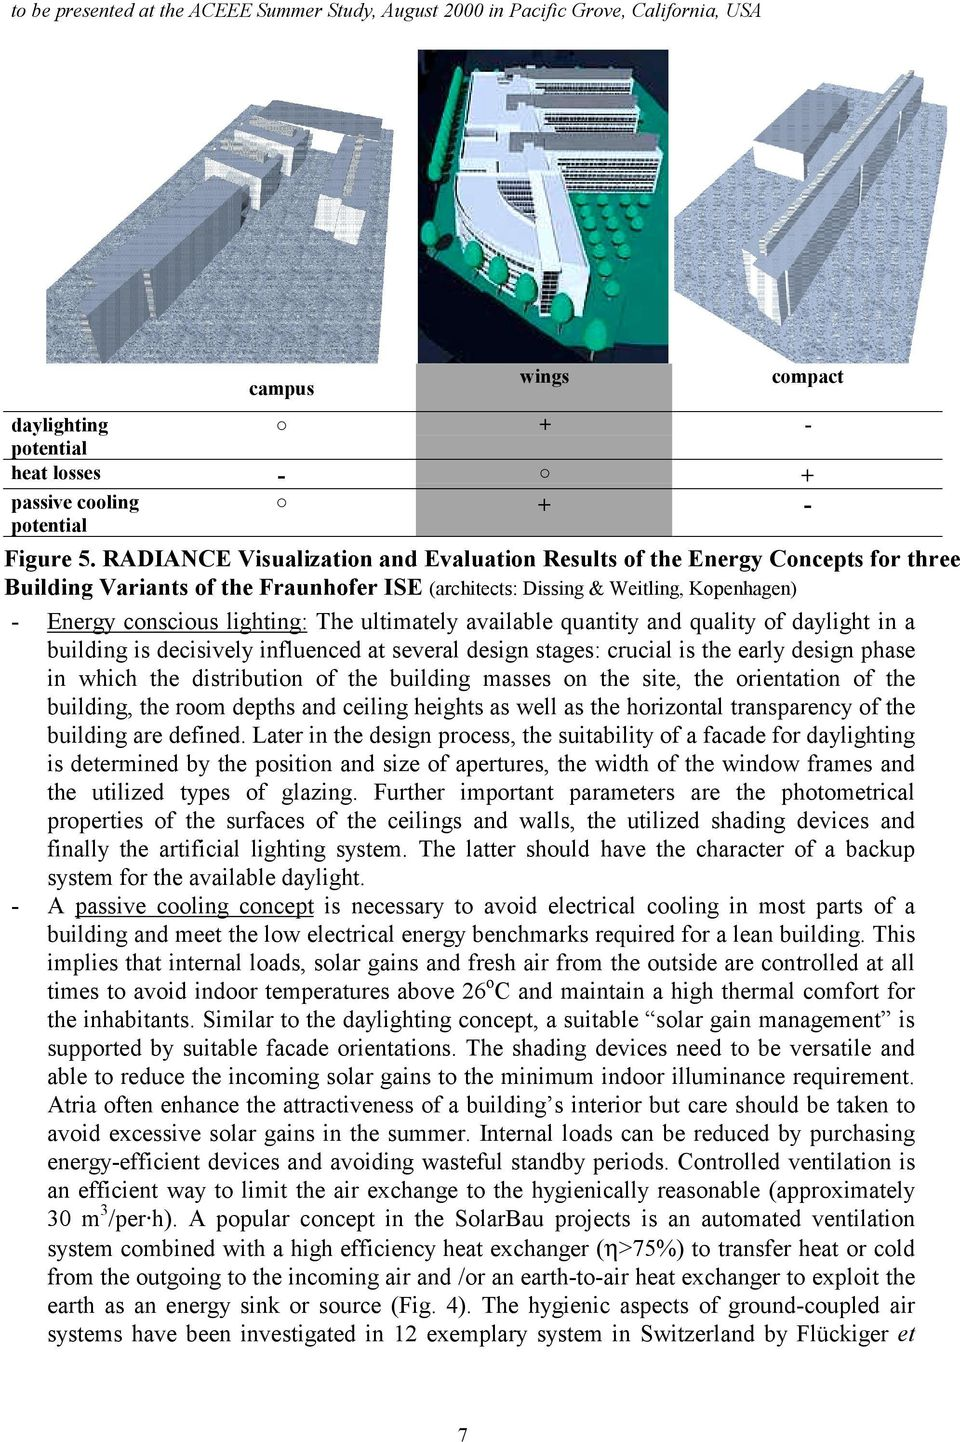 ultimately available quantity and quality of daylight in a building is decisively influenced at several design stages: crucial is the early design phase in which the distribution of the building